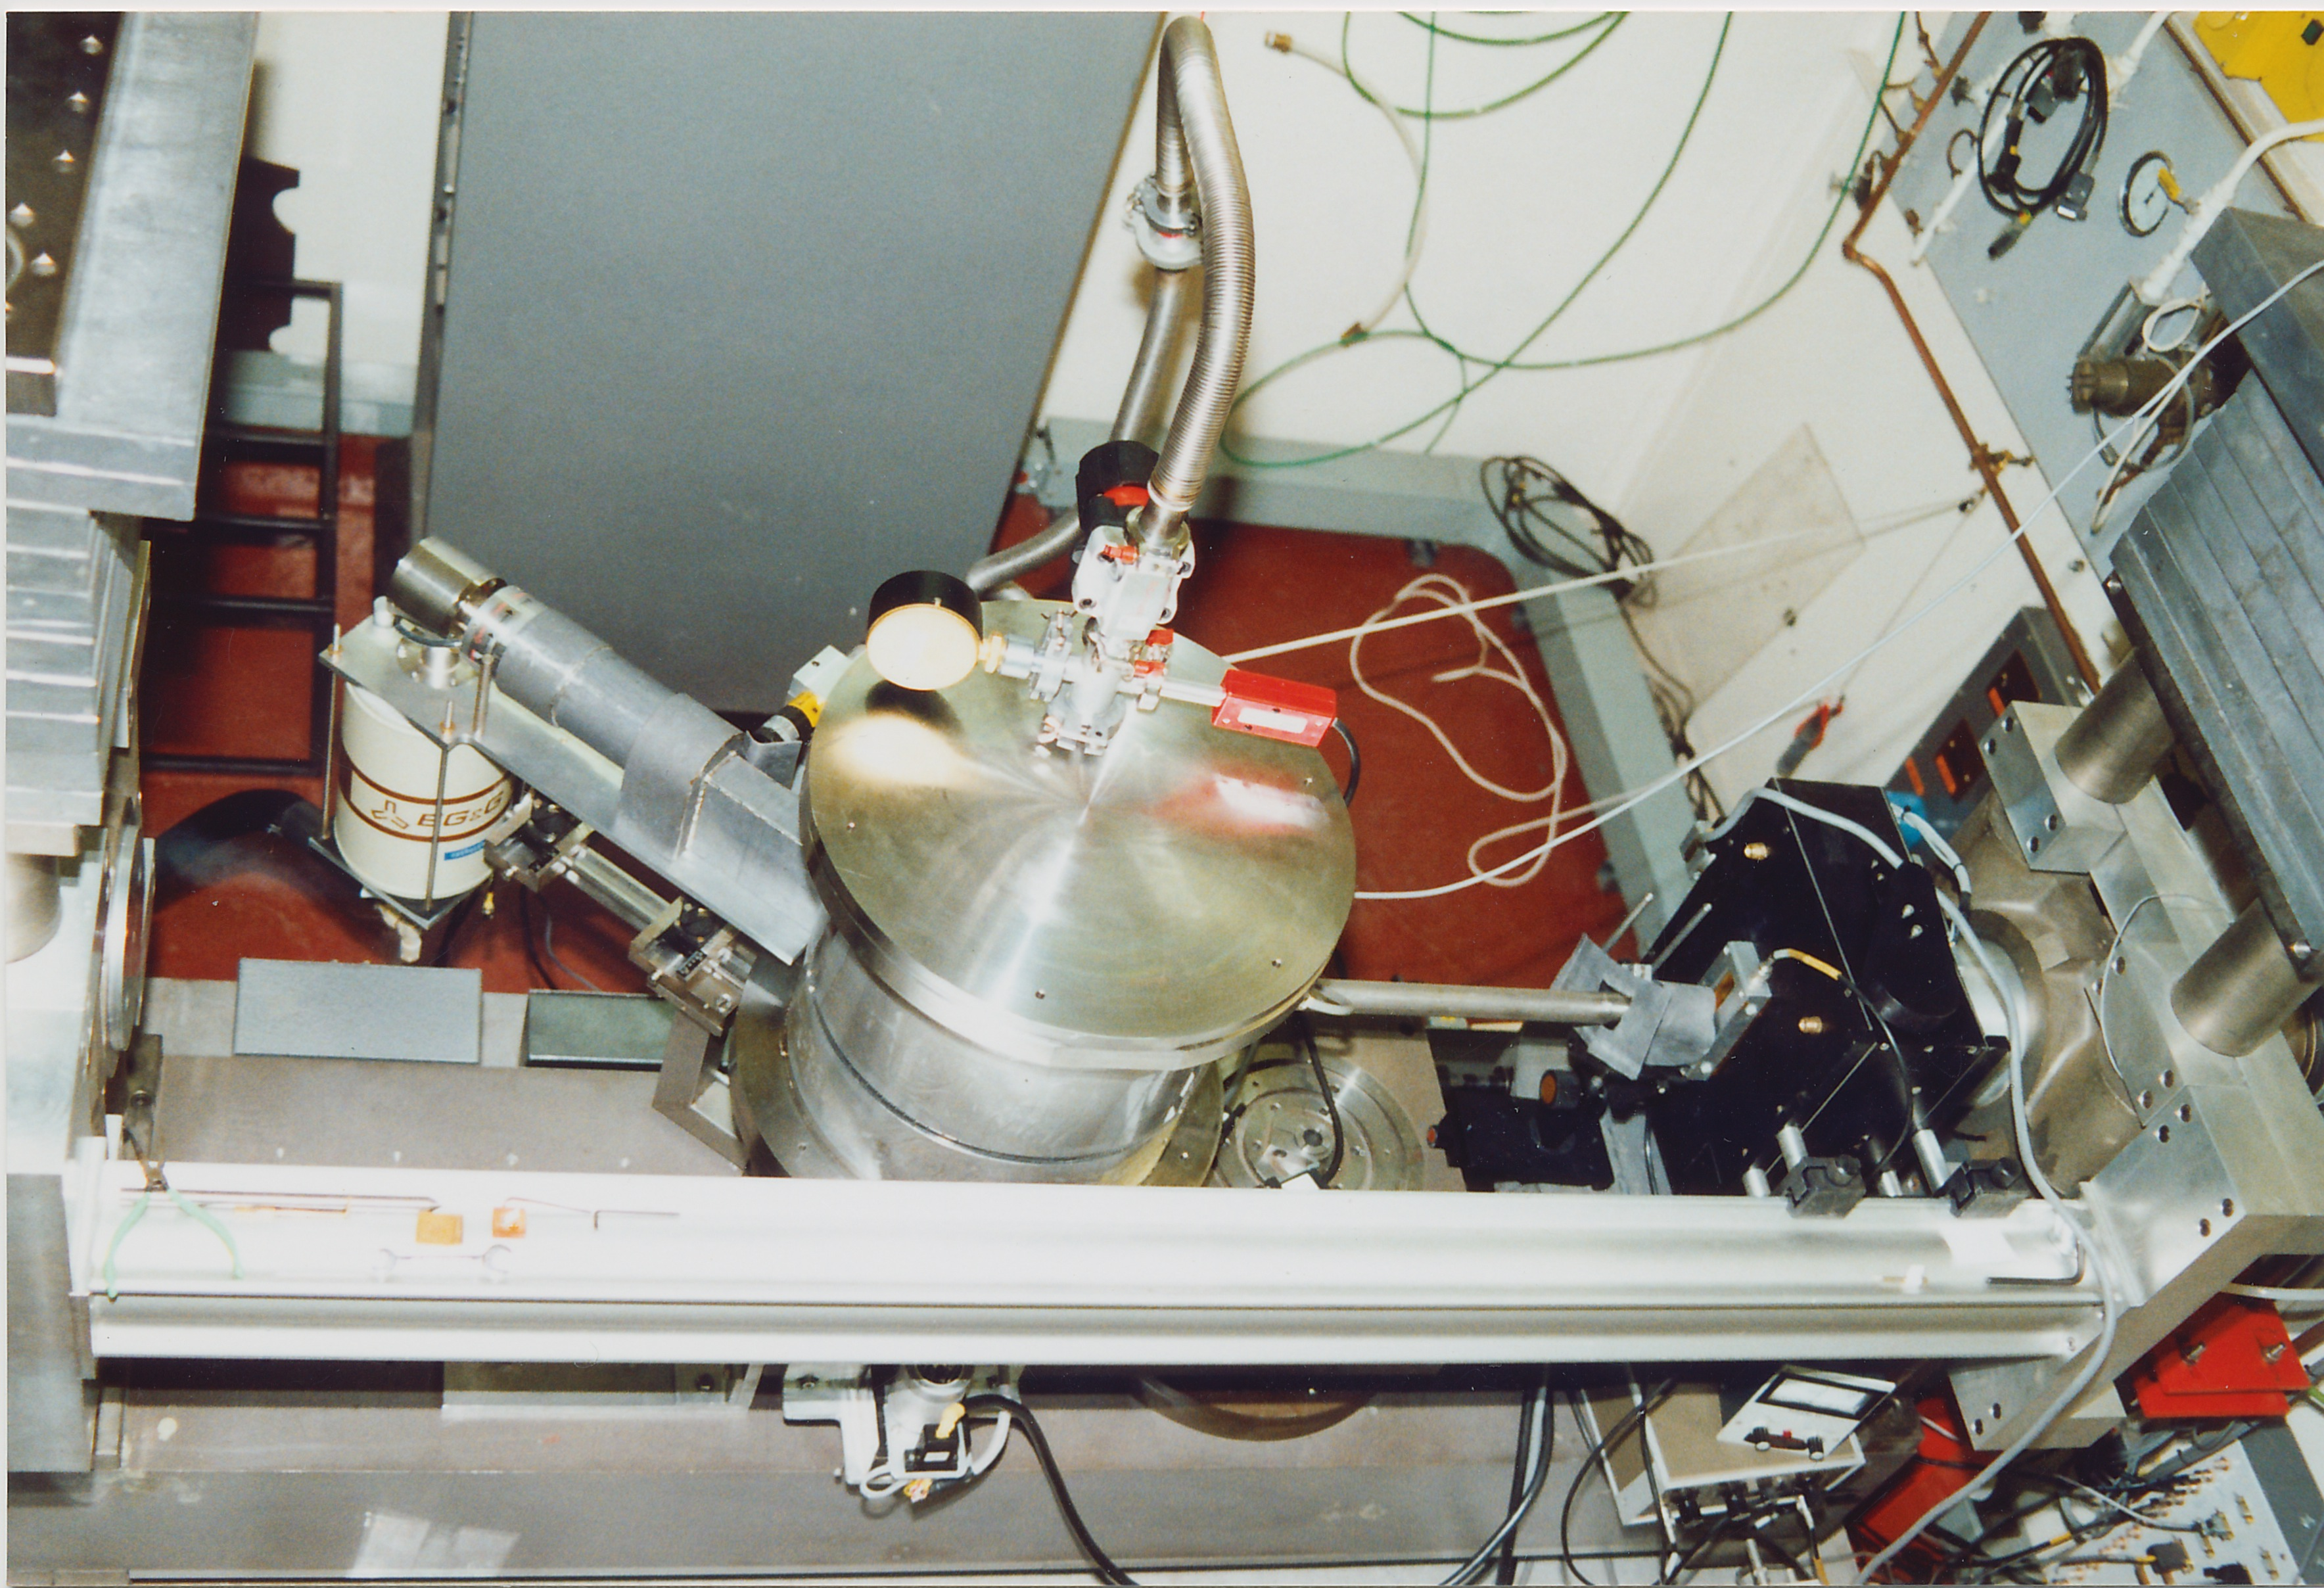 sc0075.jpg - Scattering apparatus with external incident beam collimator (evacuated?), Nov 1990